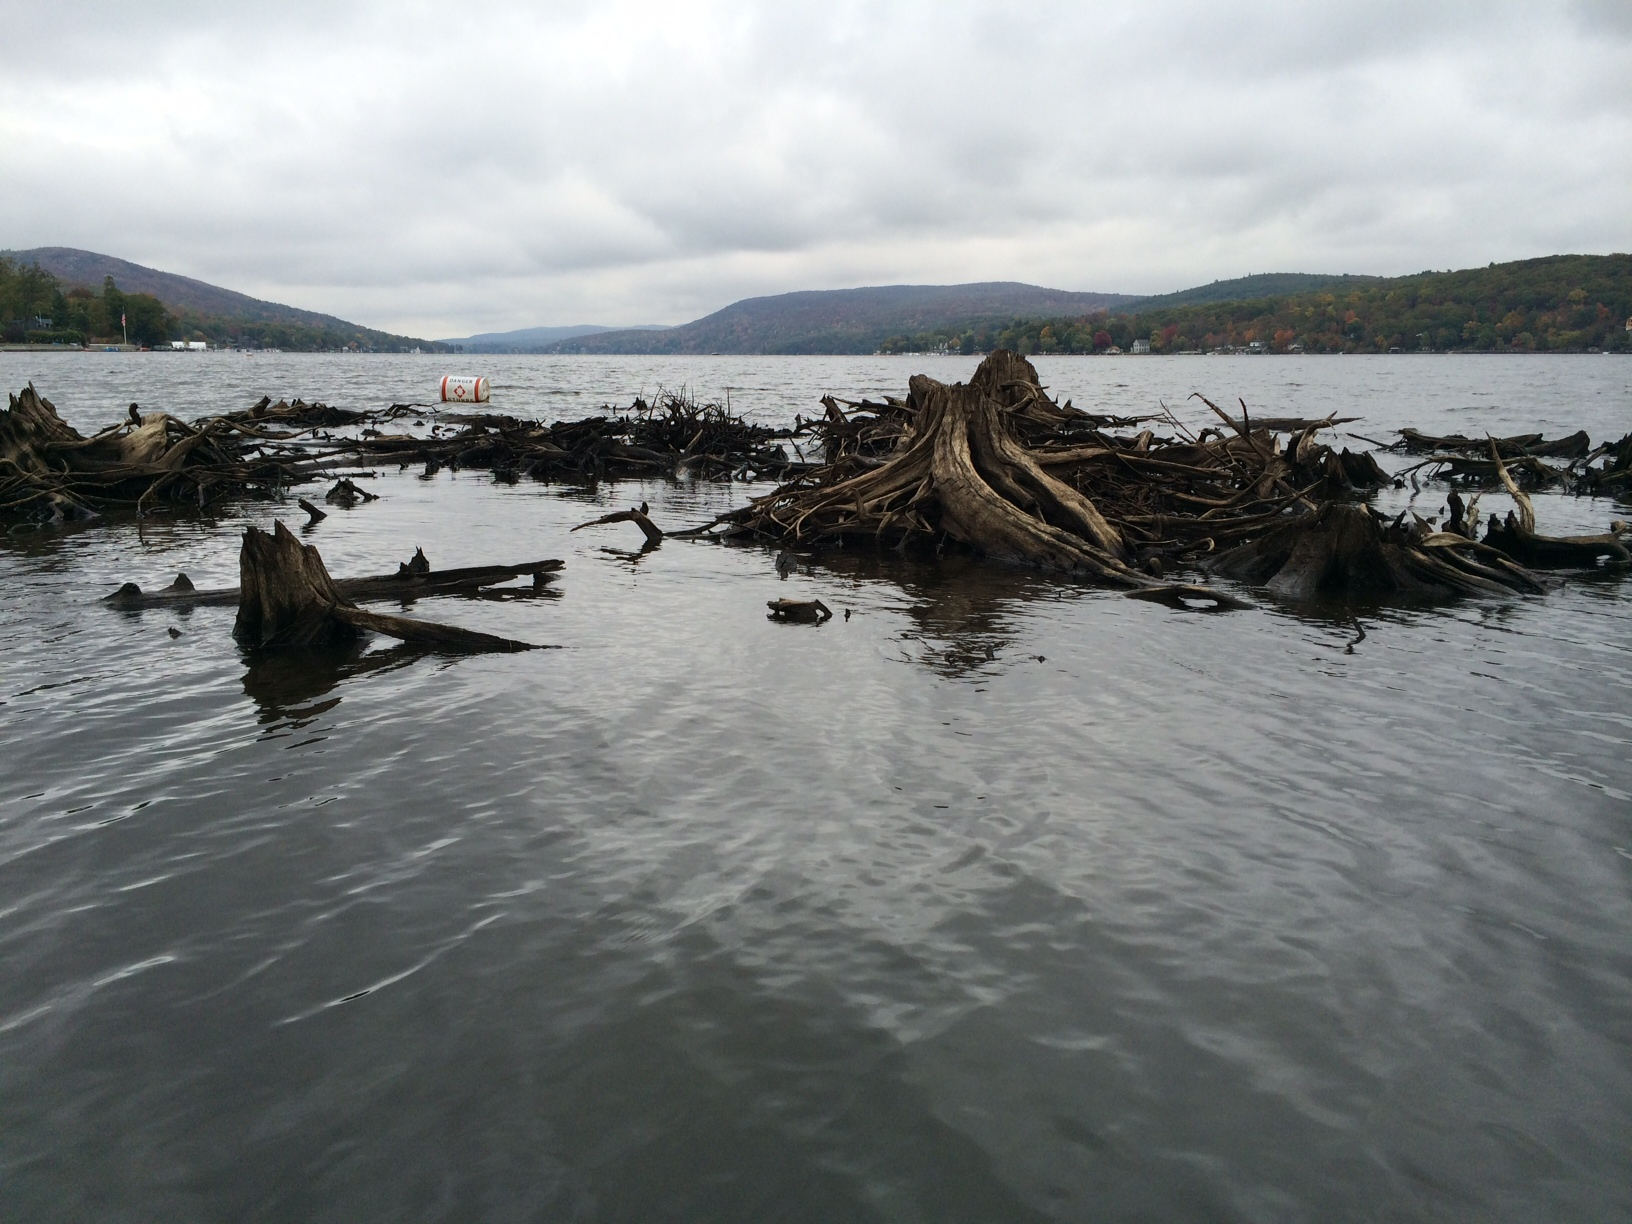 Navigational Hazards - Removing floating stumps fields is one way the commission works to insure that Greenwood Lake is safely passable by all watercraft. Also, by clearing areas of the lake, such as Belcher's Creek, by removing weeds, sediment, and debris is another way the commission will improve water quality throughout the lake.